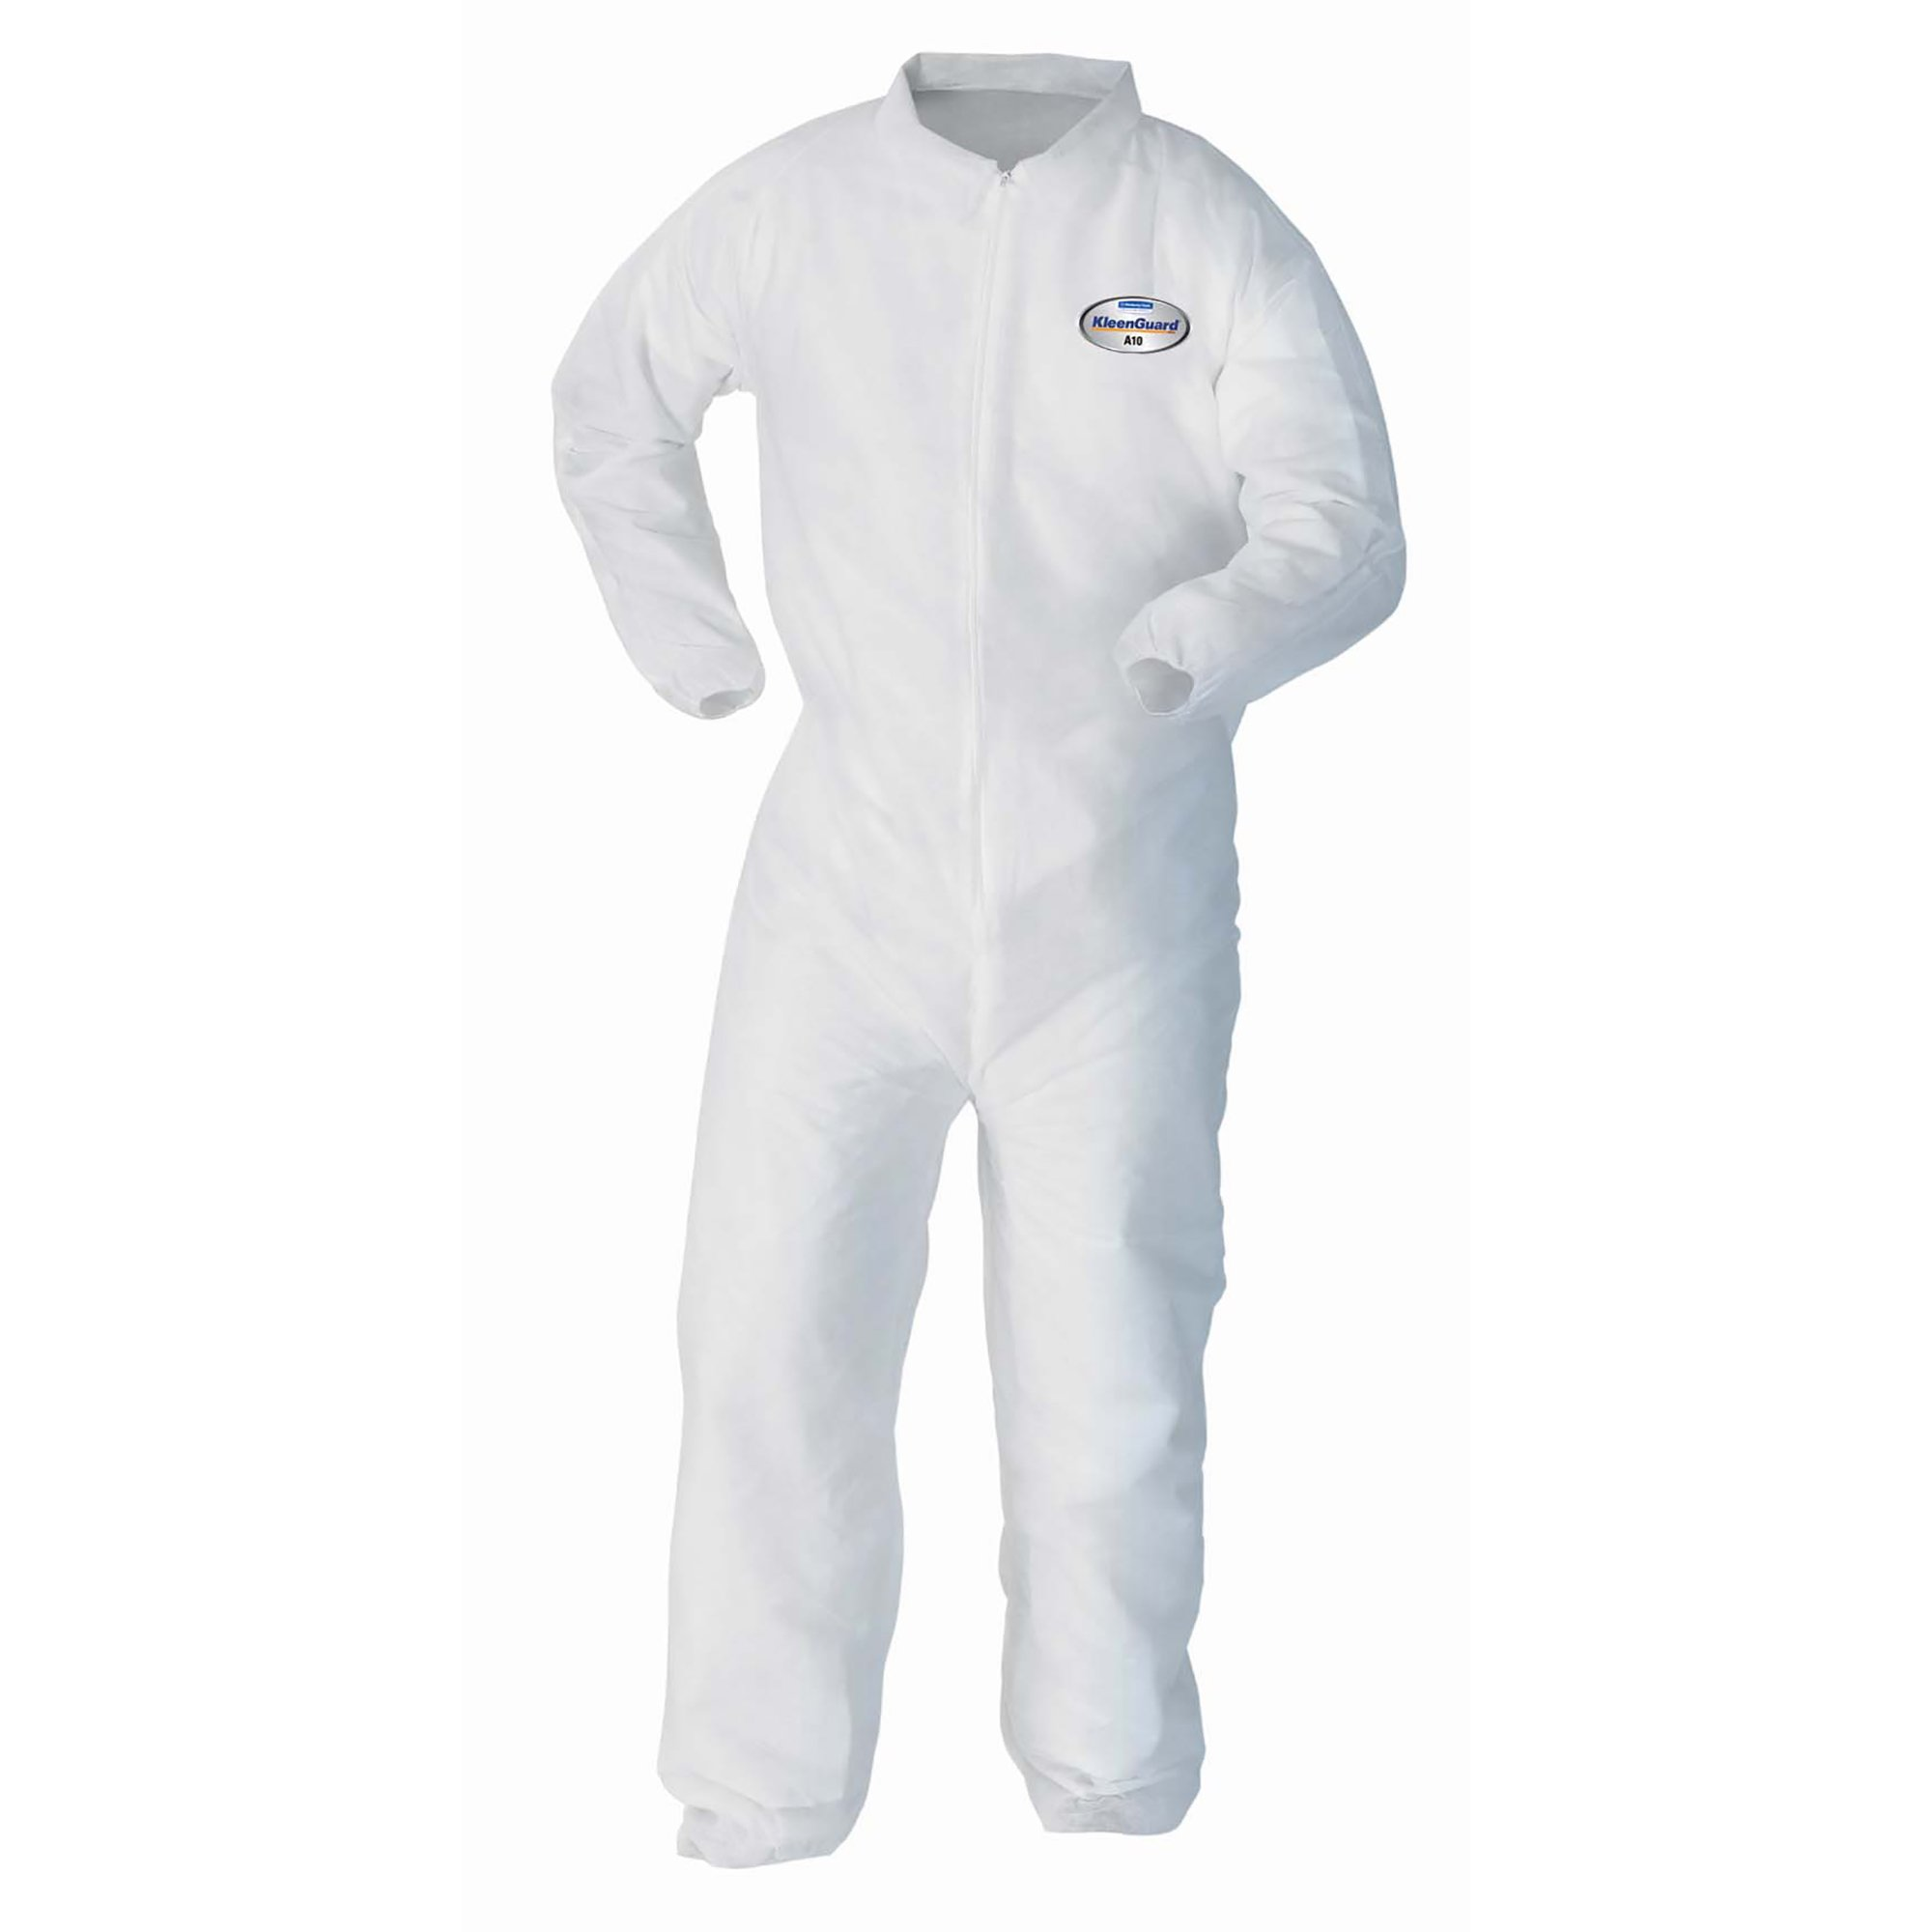 Kimberly-Clark KleenGuard A10 Polypropylene Light Duty Coverall, Disposable, Elastic Wrist (Case of 25) by Kimberly-Clark Professional